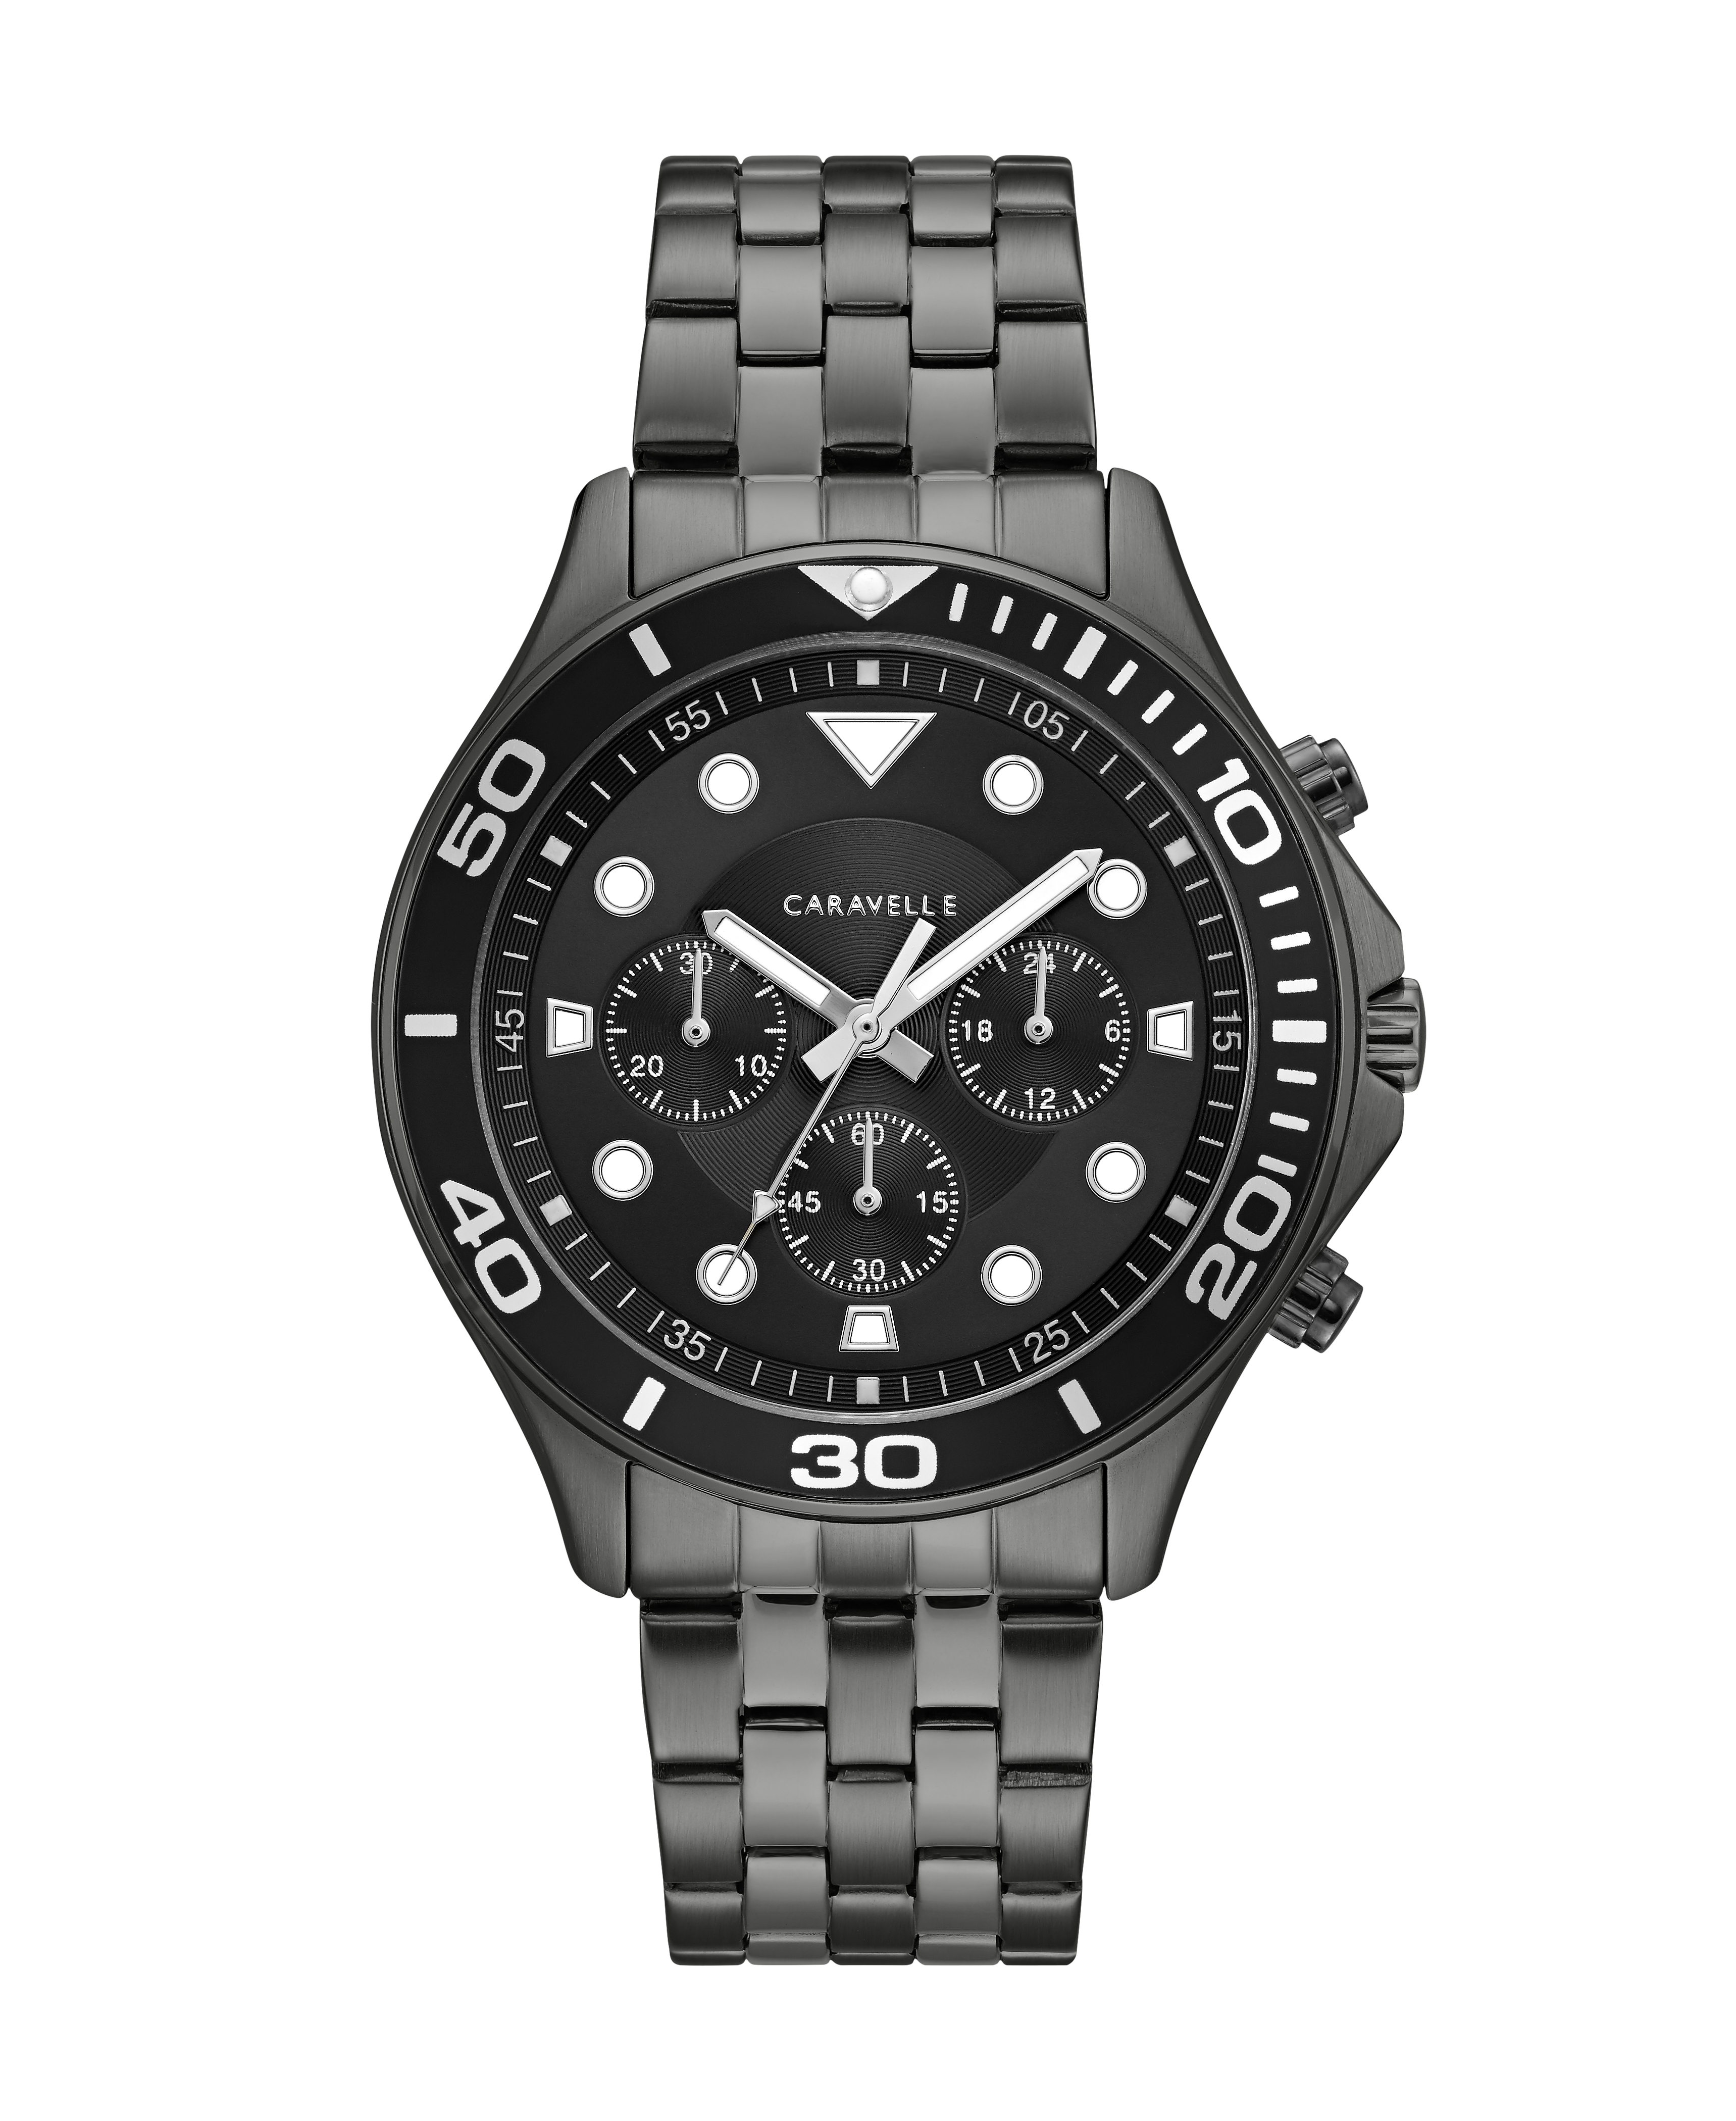 NY Watch for Man - Gunmetal stainless steel & Matte black dial